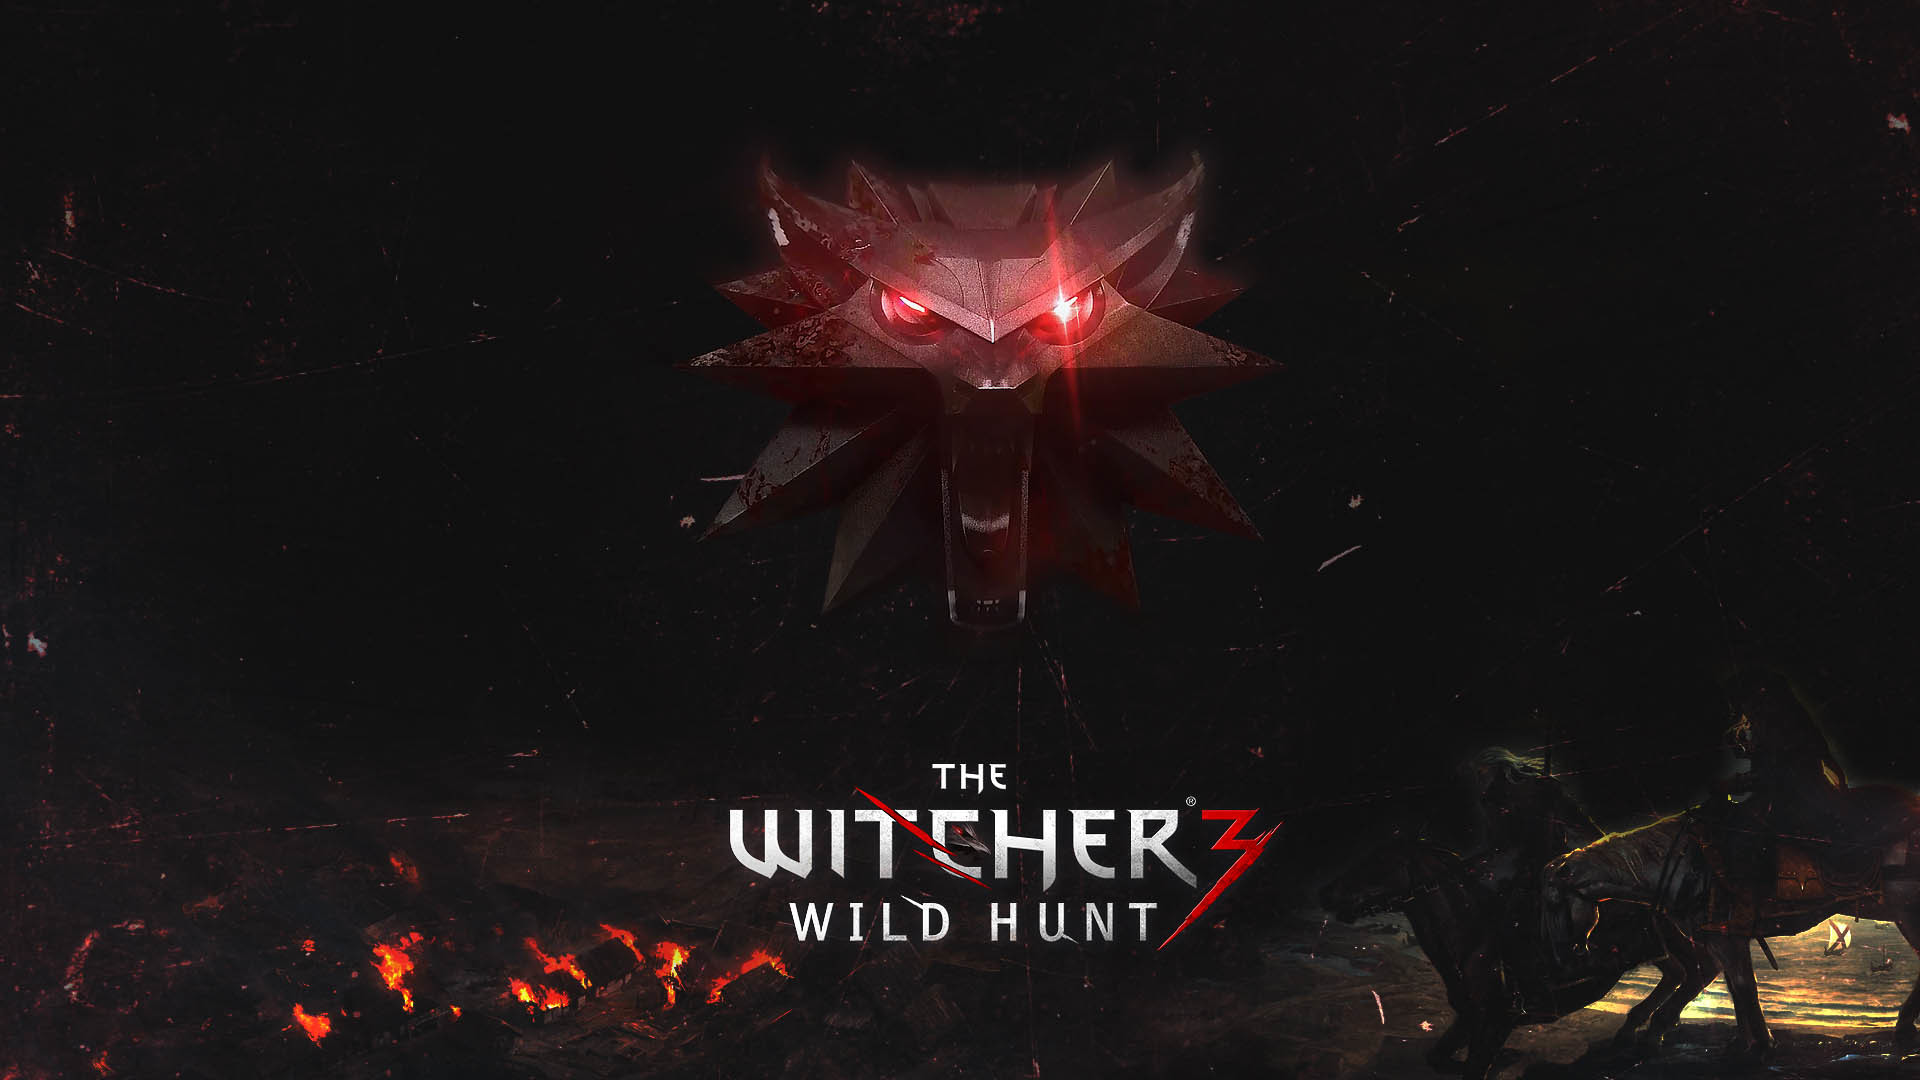 The Witcher 3 Medallion wallpaper